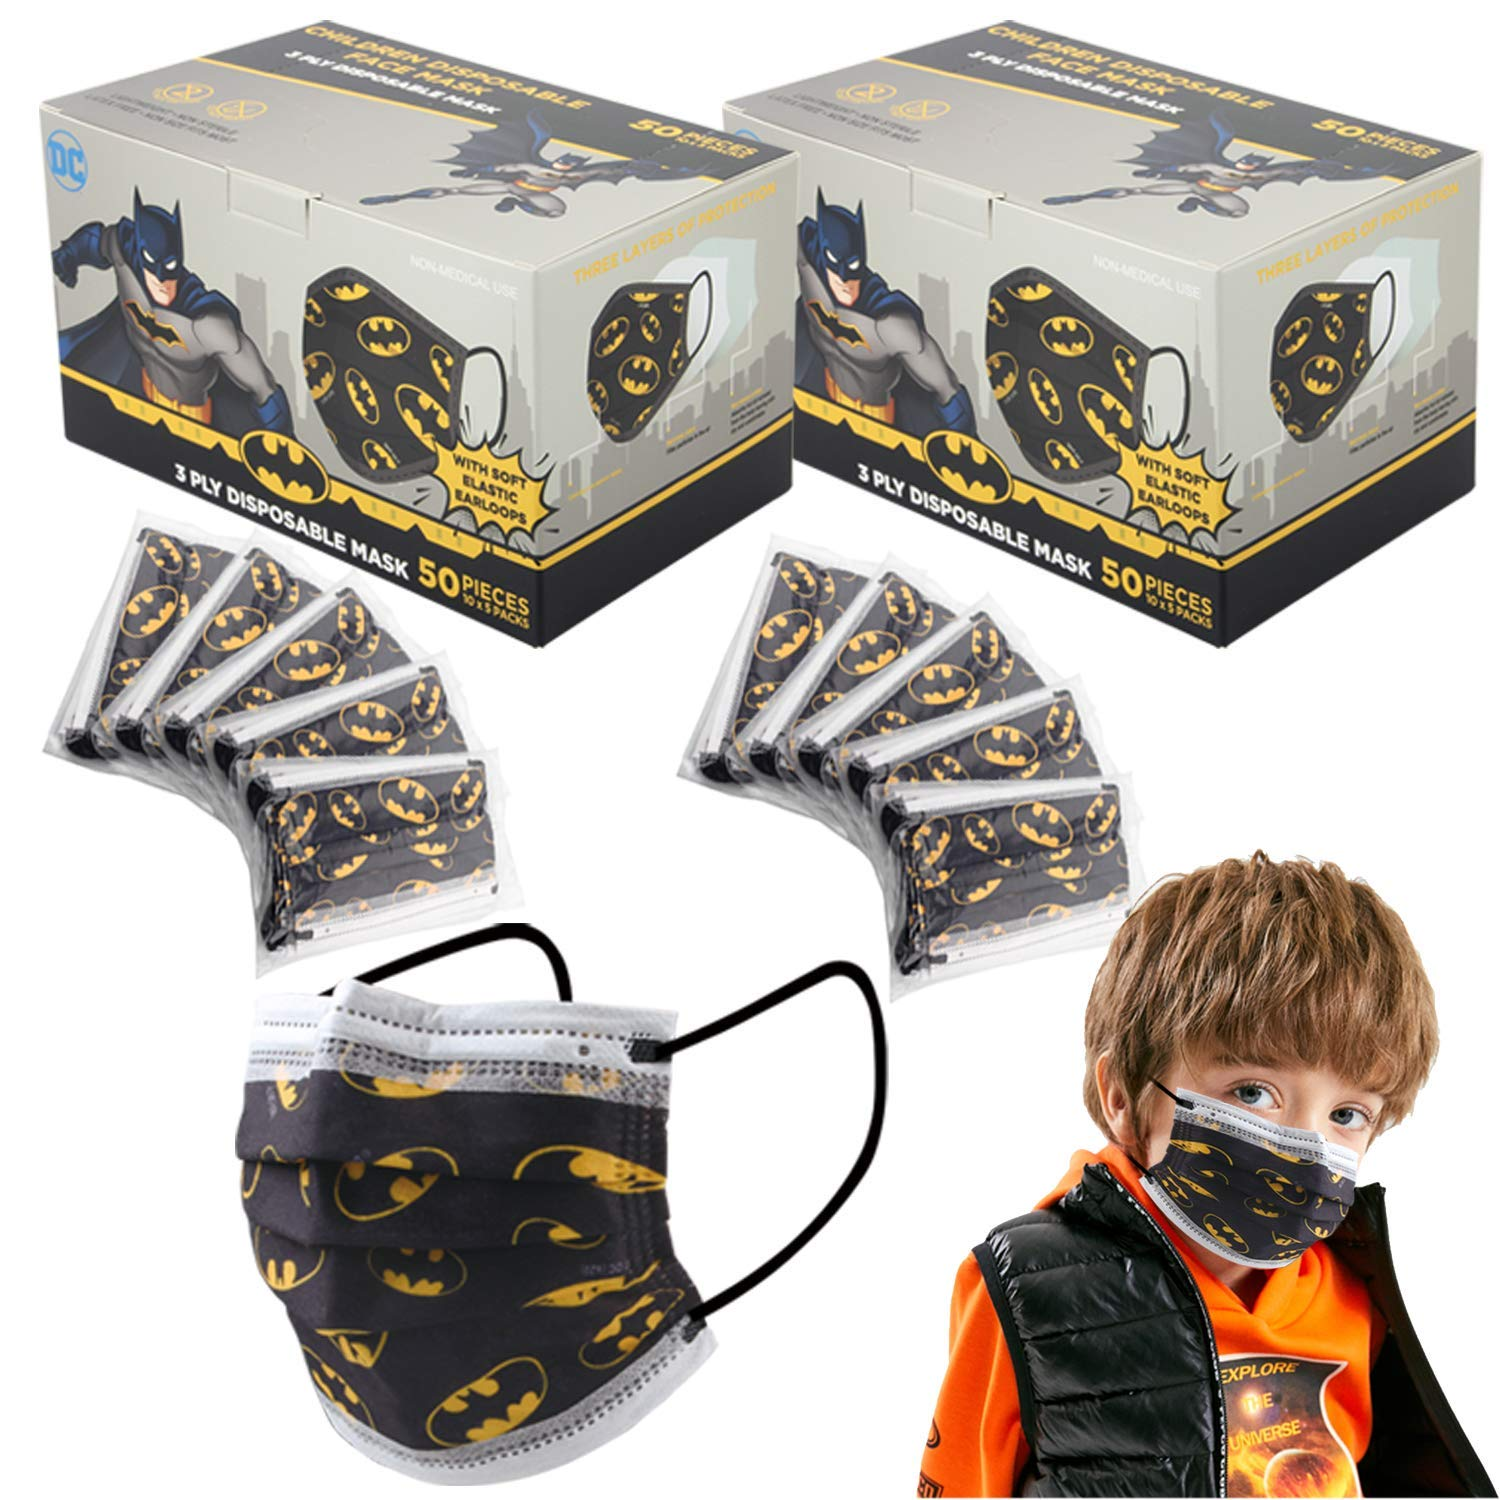 DC KIDS MASK DISPOSABLE 3 PLY, Age 3 - 12, SHIP FROM USA